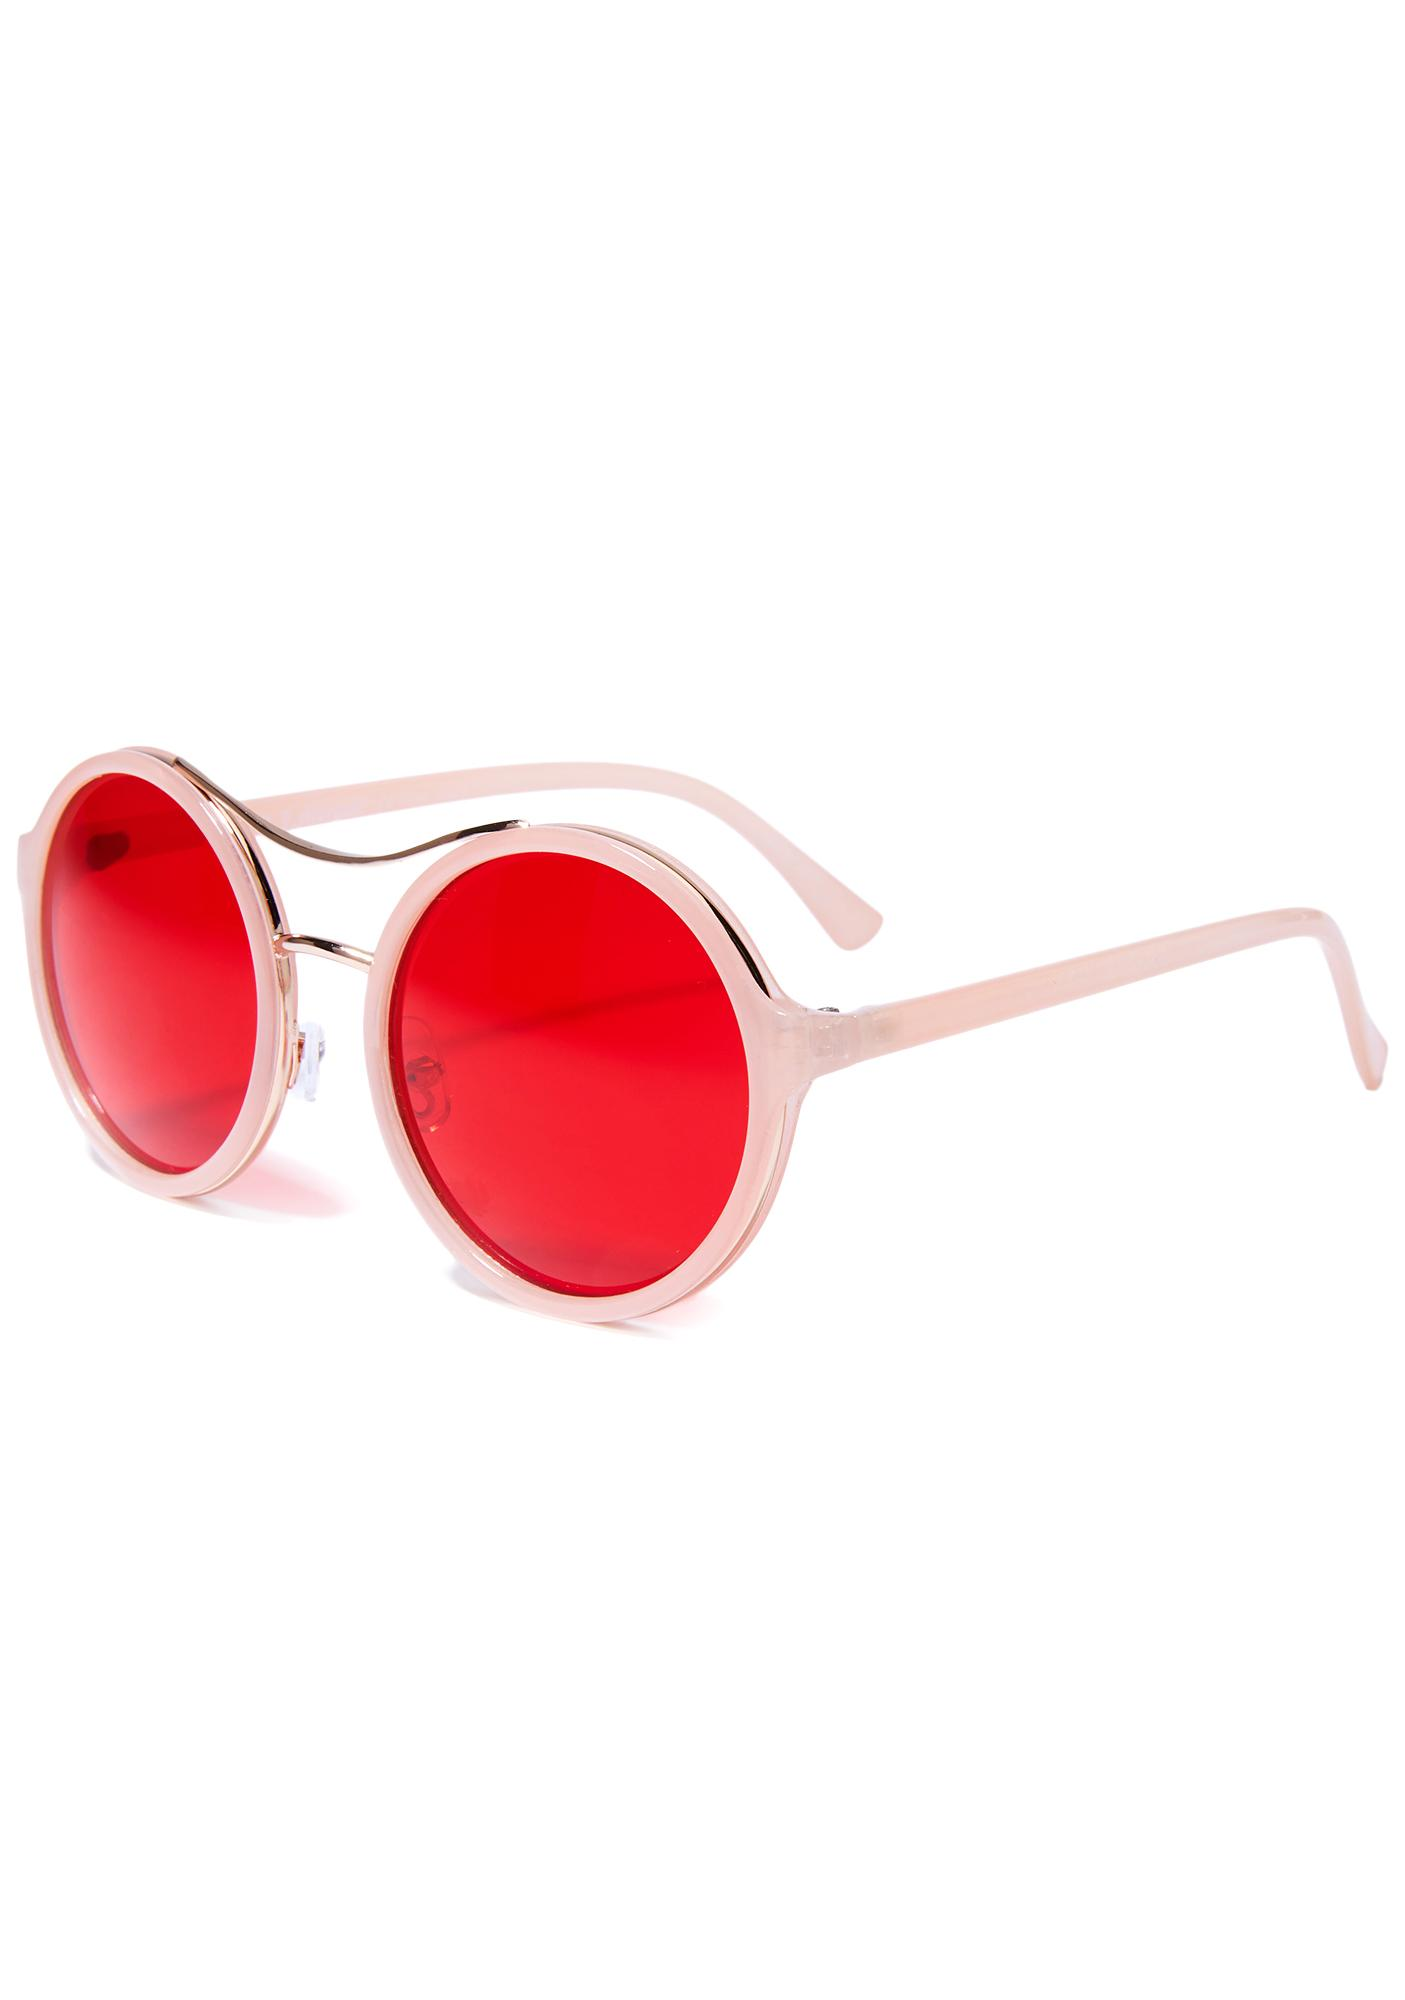 Life In Pink Round Sunglasses